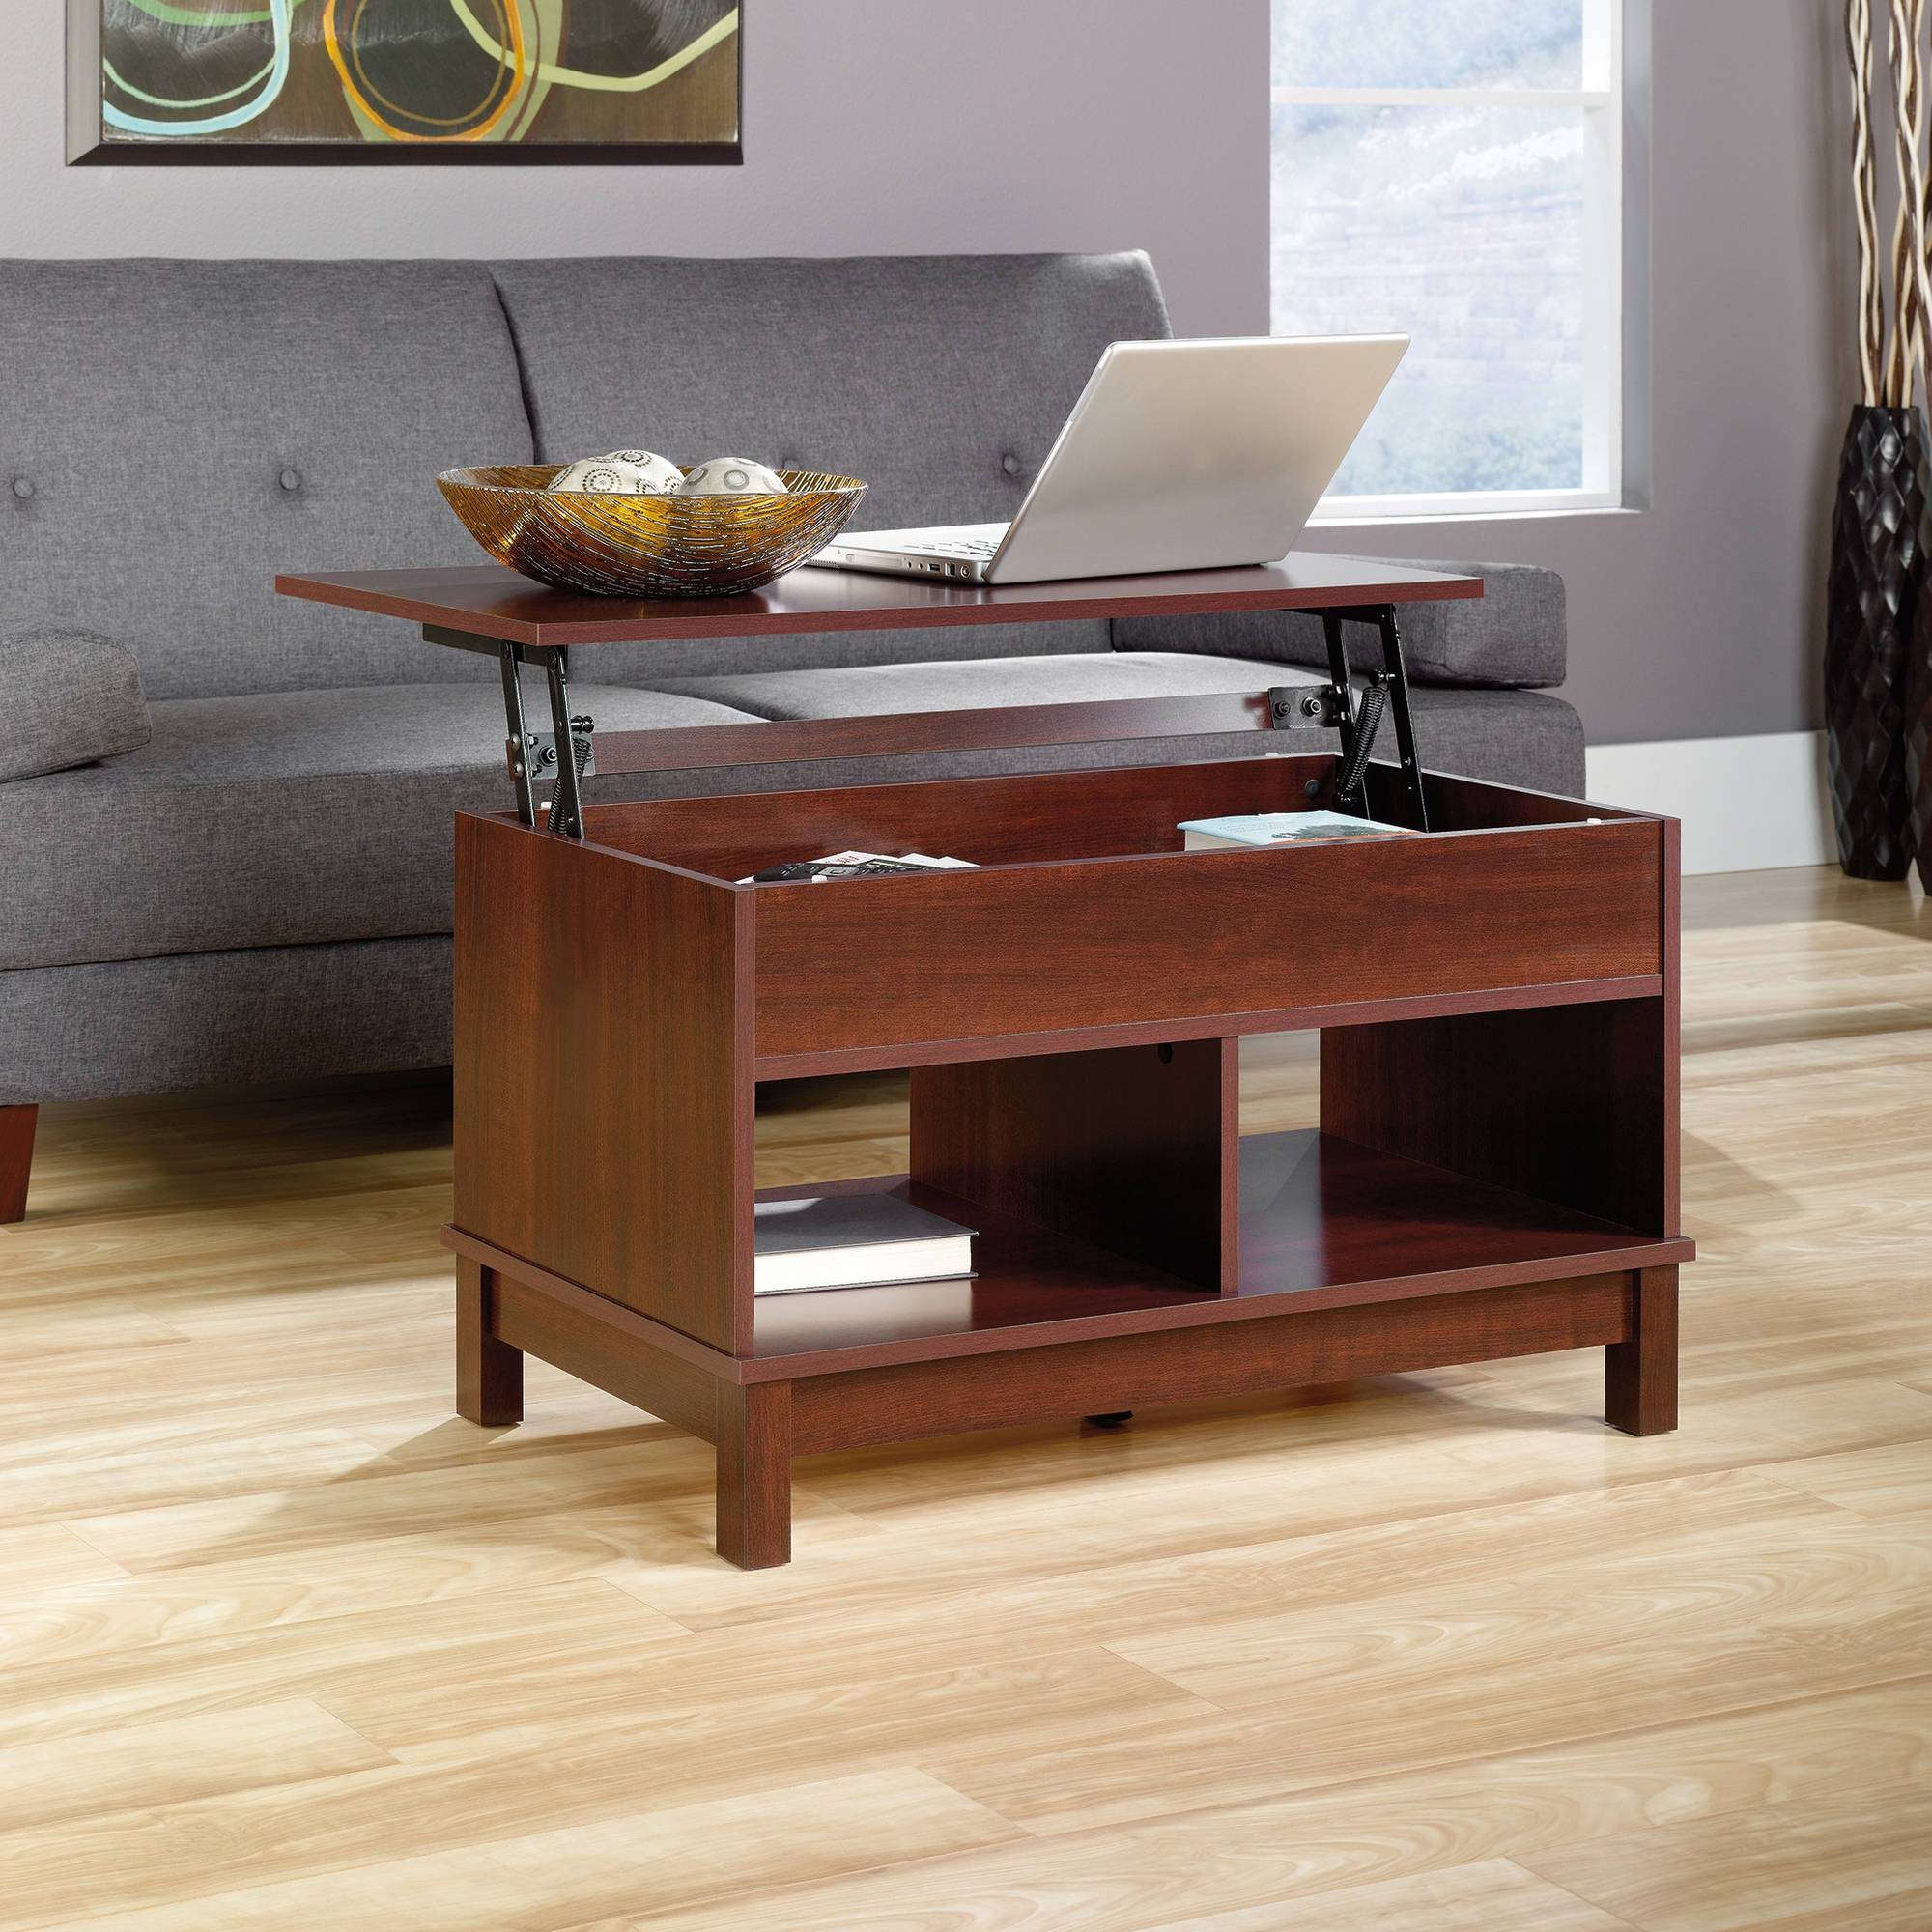 Sauder Kendall Square Lift Top Coffee Table, Cherry – Walmart Throughout Current Lift Top Coffee Tables With Storage (View 17 of 20)